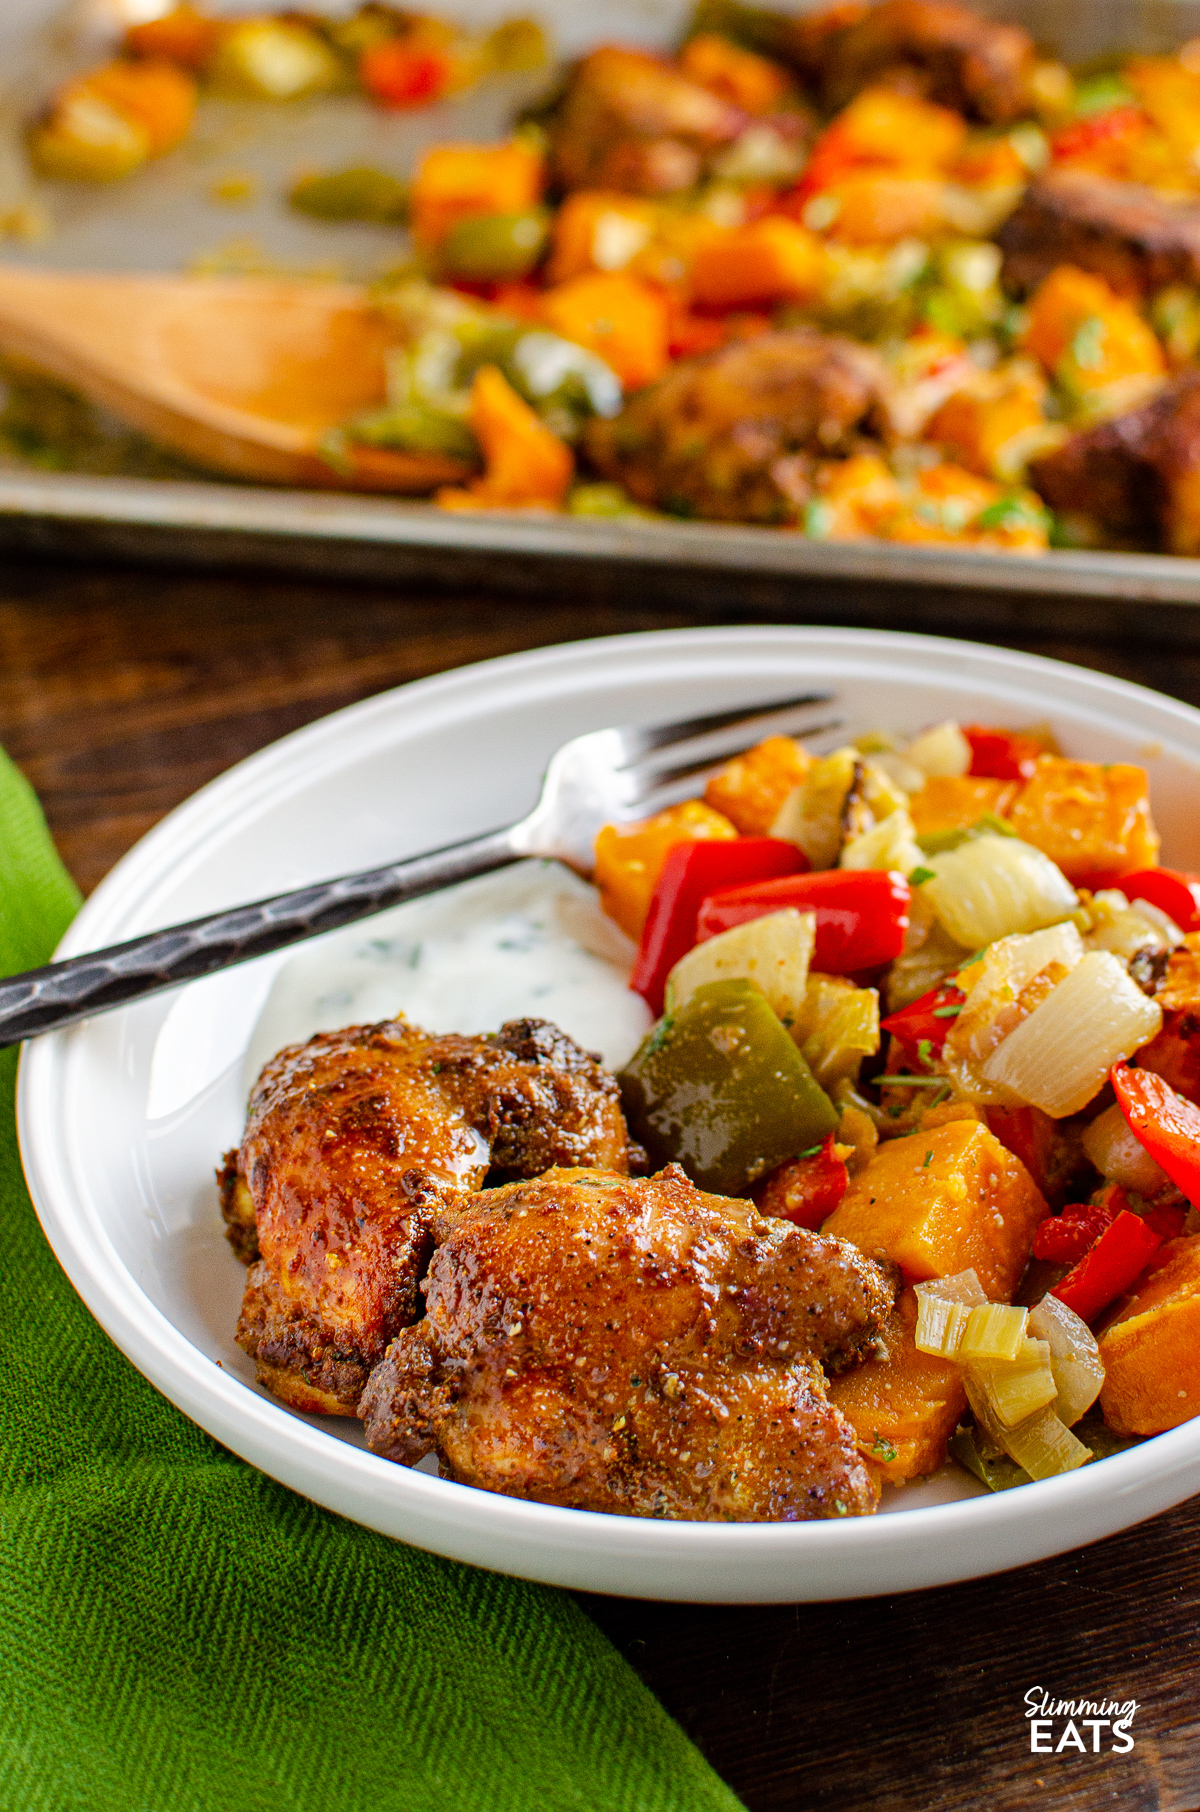 Seasoned Chicken and Roasted Sweet Potato and vegetables baked on a  Tray in a white bowl with served with some yoghurt with lemon juice and cilantro.